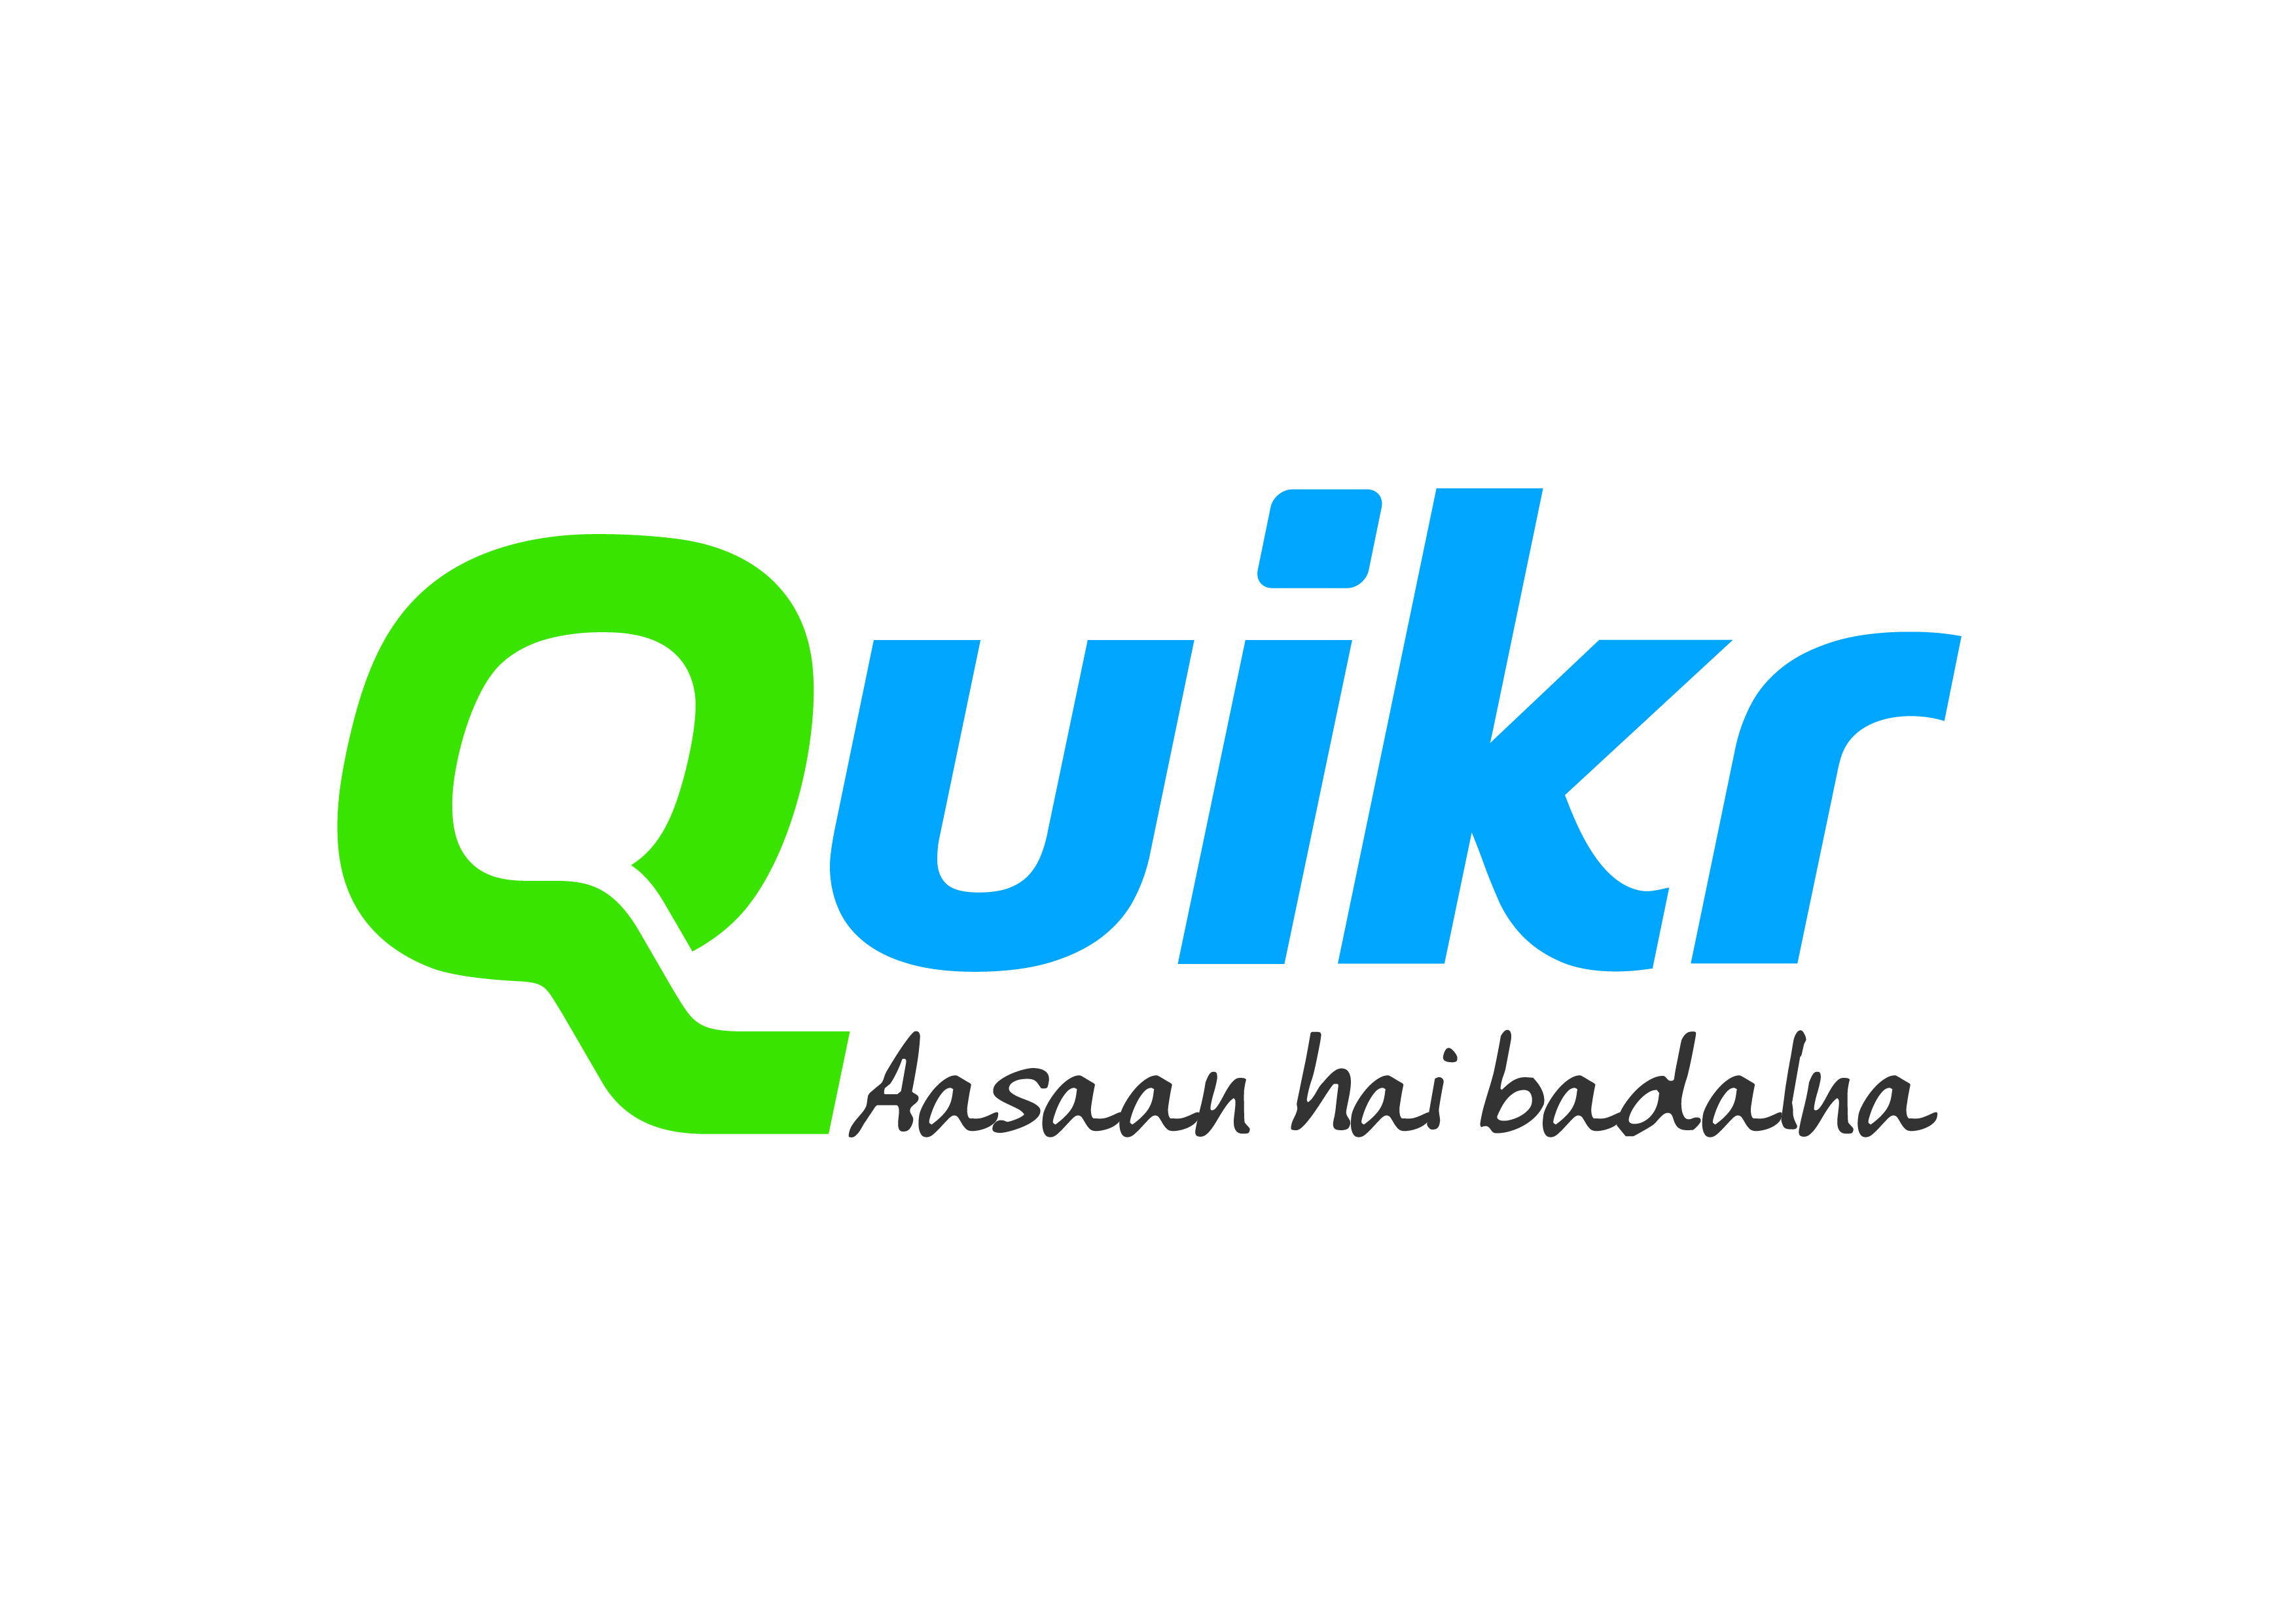 Quikr's Logo and Tagline